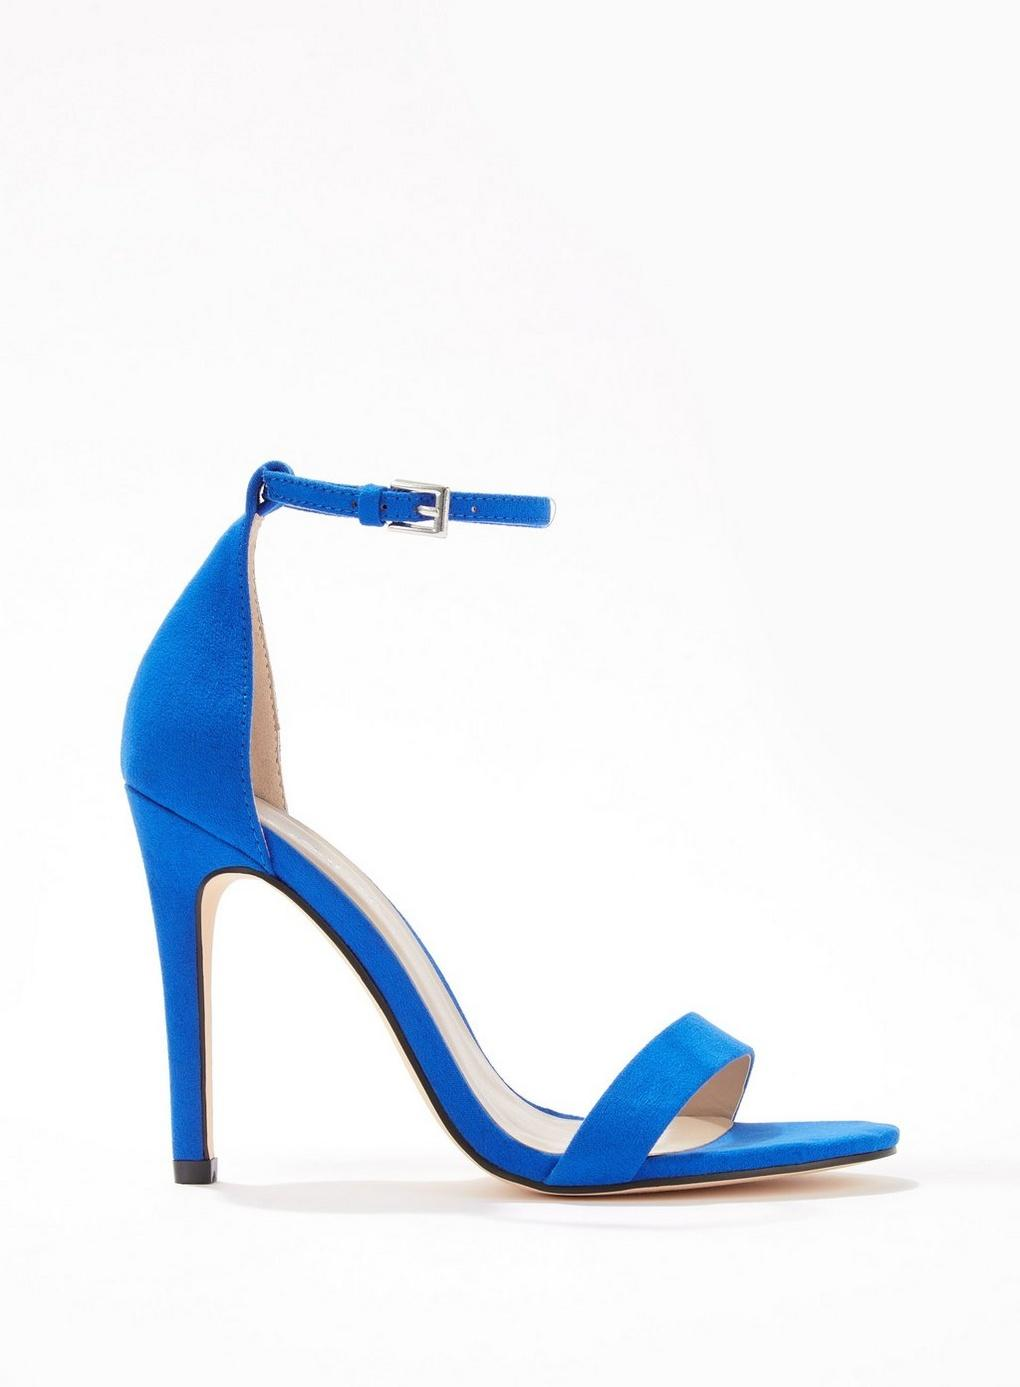 301394b4420 Lyst - Miss Selfridge Hester Blue Barely There Sandals in Blue